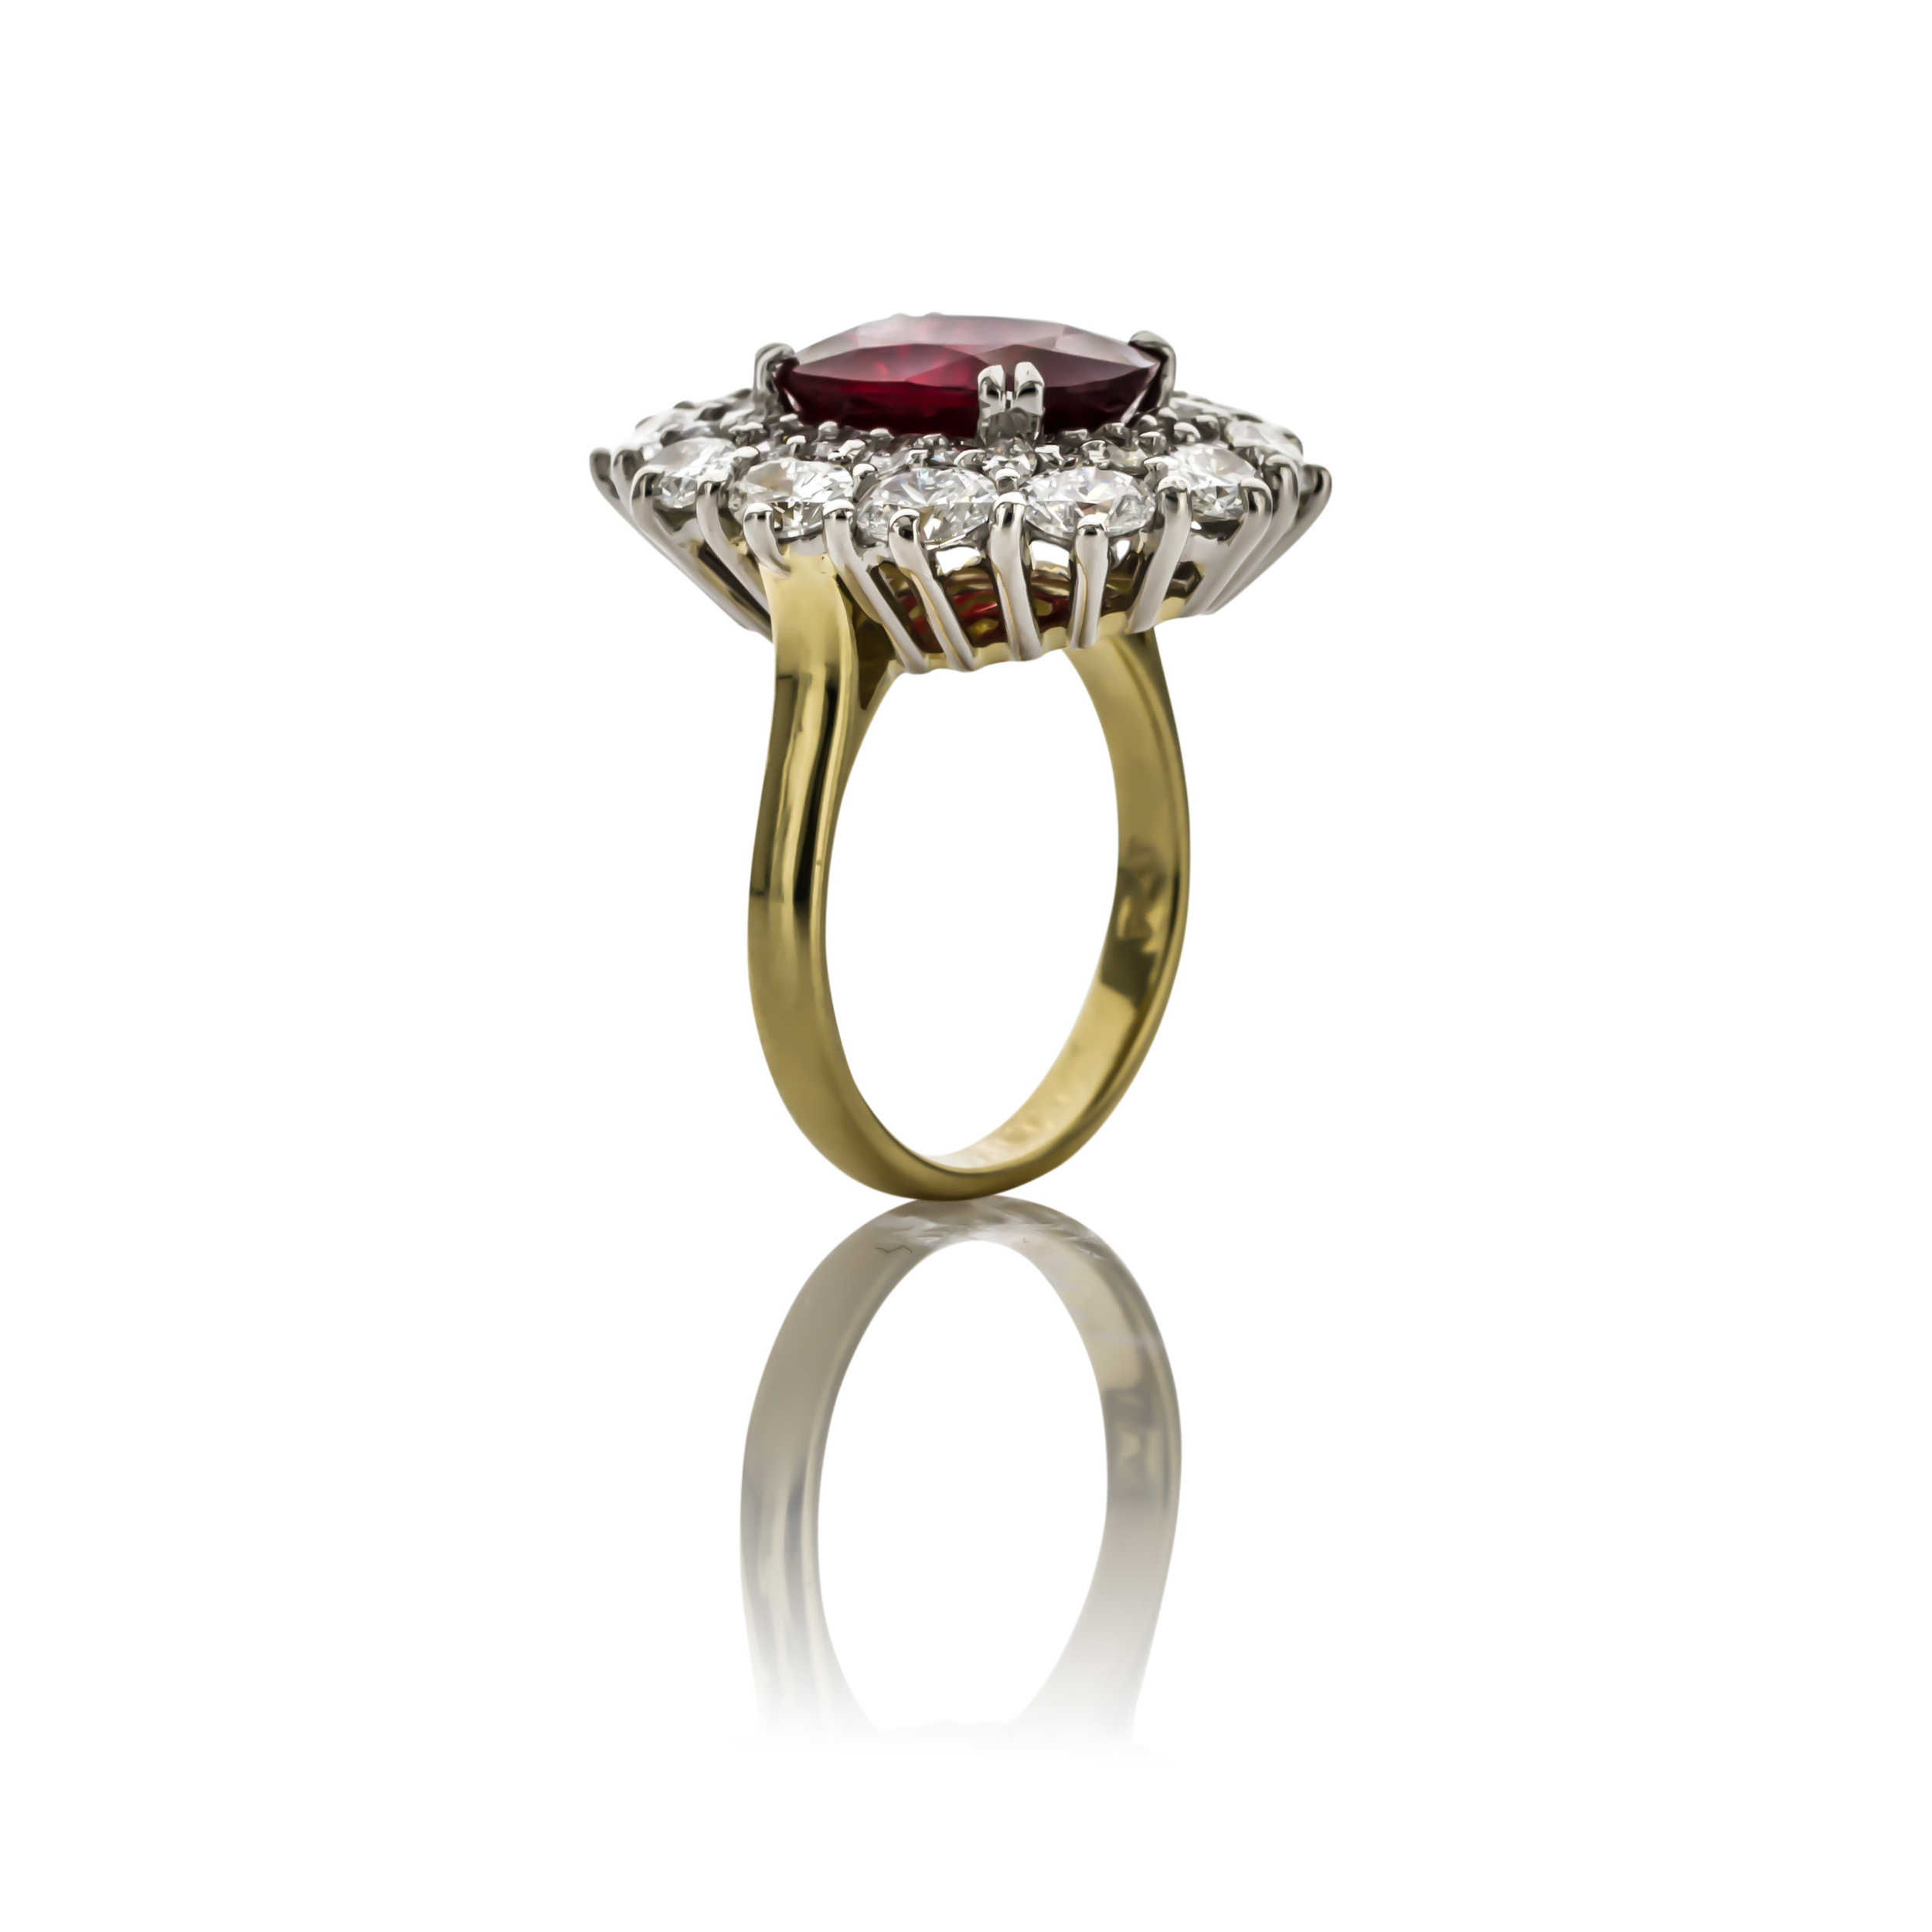 CUSTOM RUBY AND DIAMOND RING